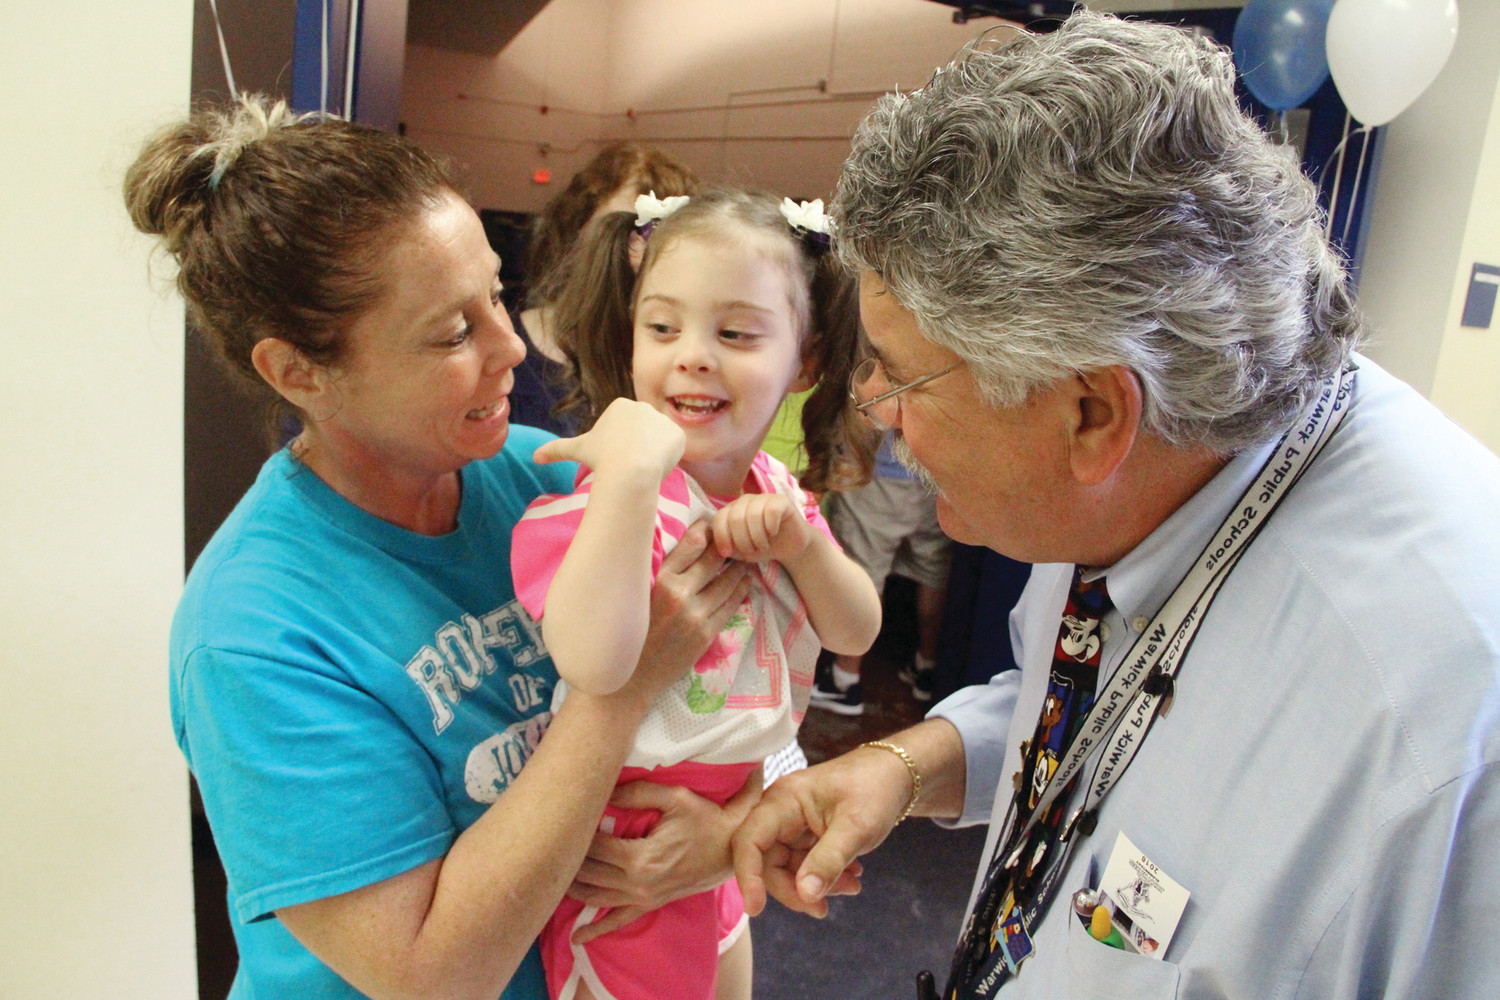 TOO YOUNG TO BE A WICKES STUDENT: Four-year old Skylah Lemoi and her aunt Kerry talk with Wickes Principal Roy Costa at Friday's open house.